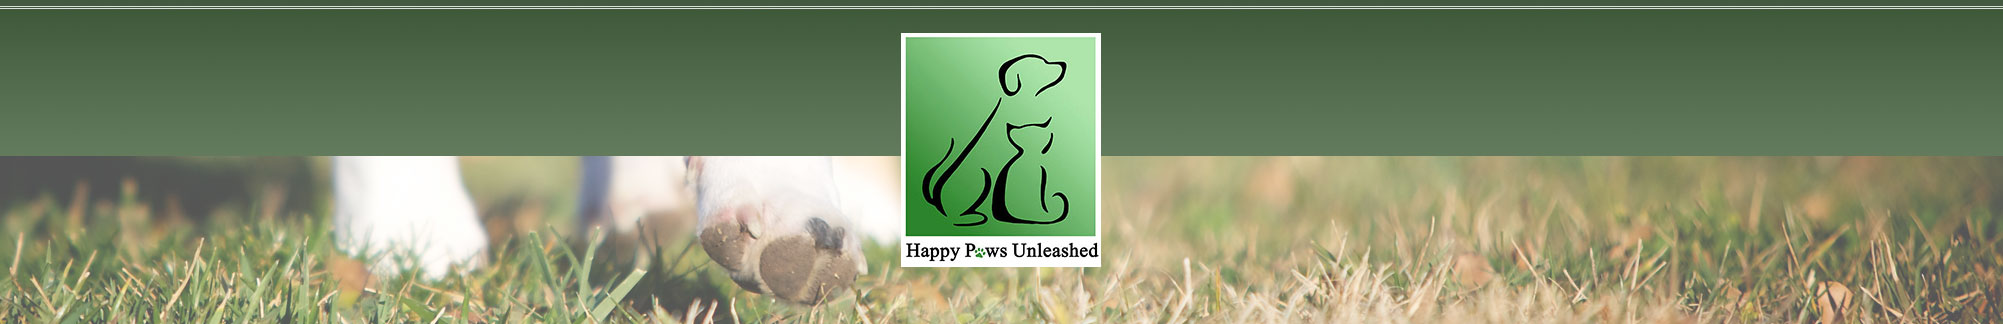 Dog Grooming Academy Happy Paws Unleashed